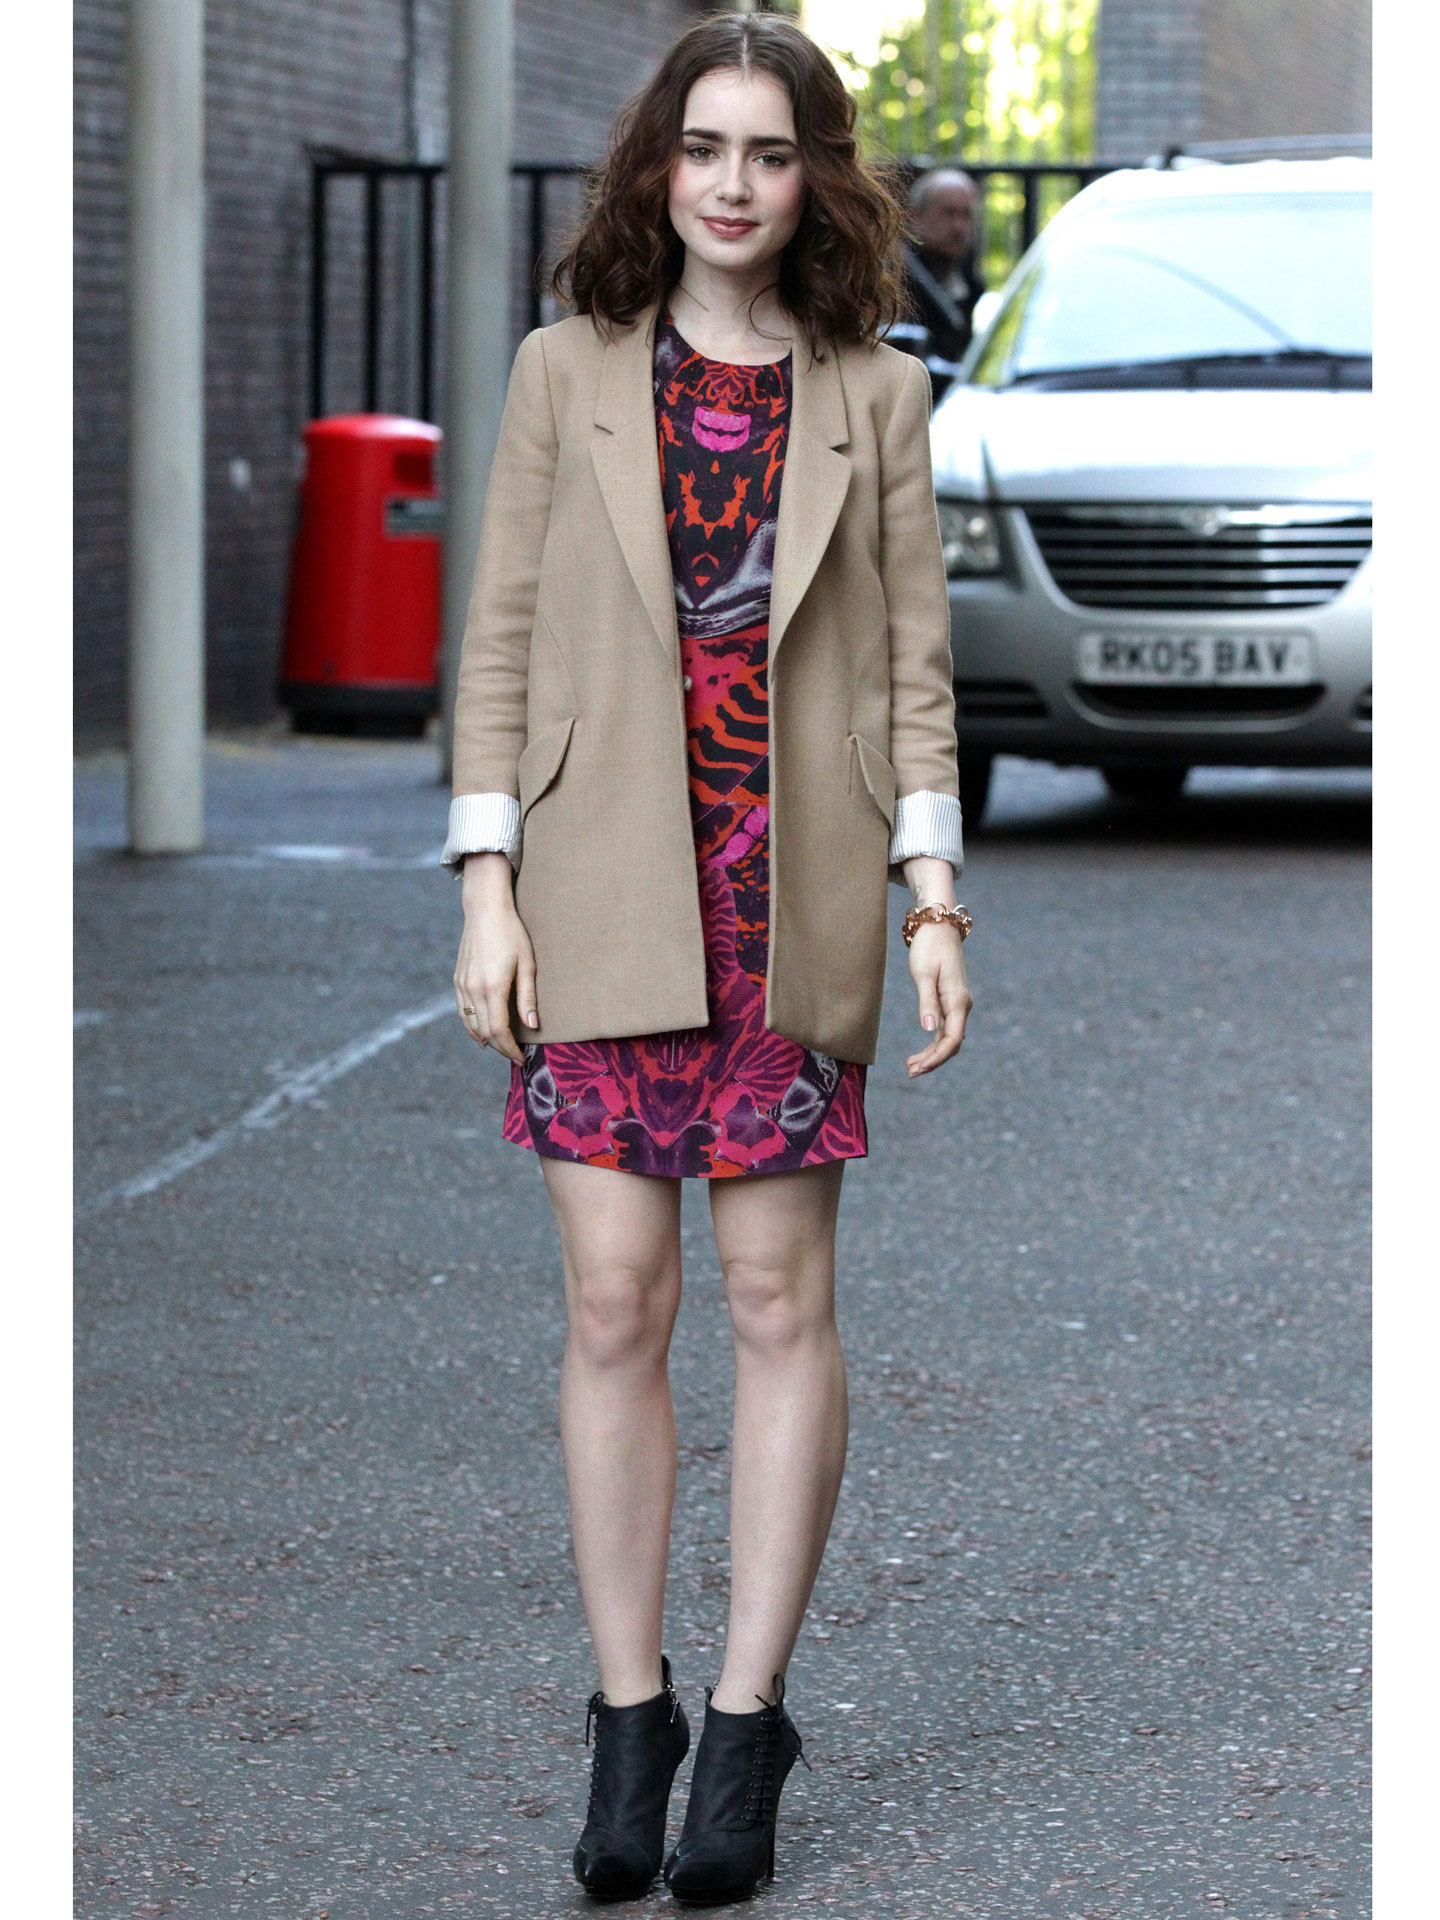 Lily Collins Fashion Quotes - Lily Collins Mortal ...